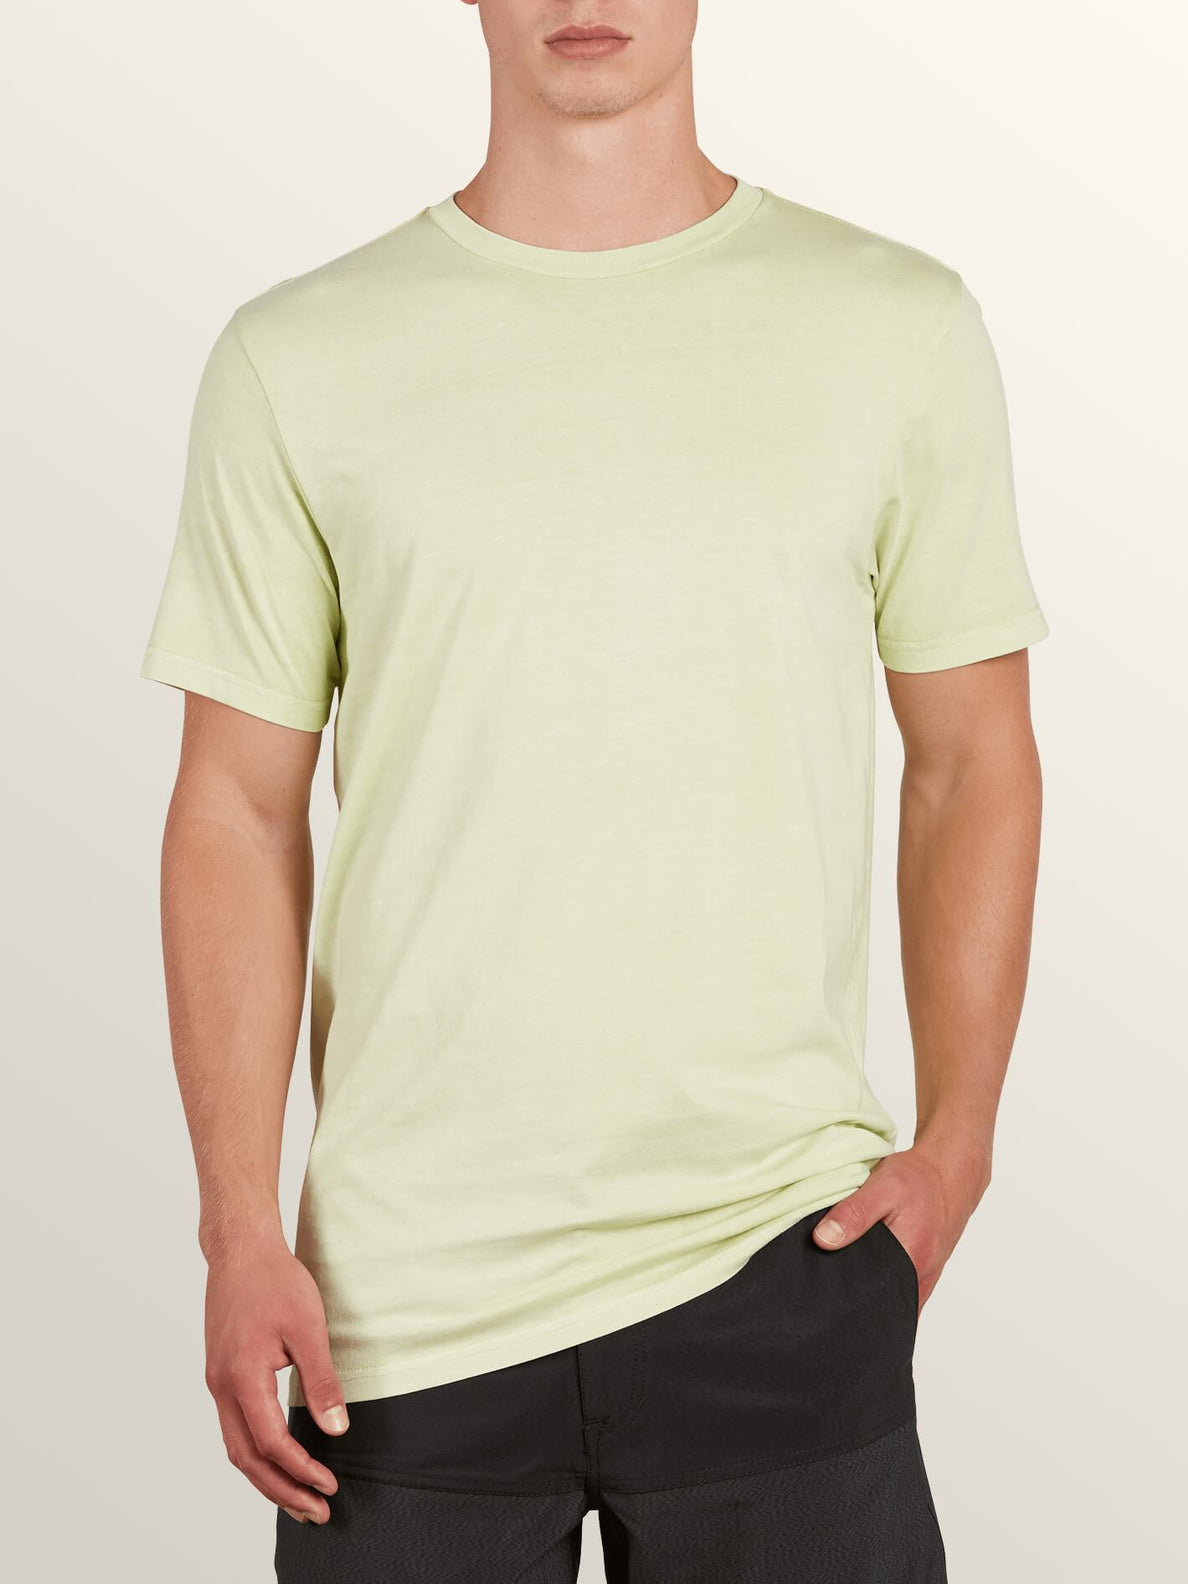 Kurzärmliges T-Shirt Pale Wash Solid - Mist Green